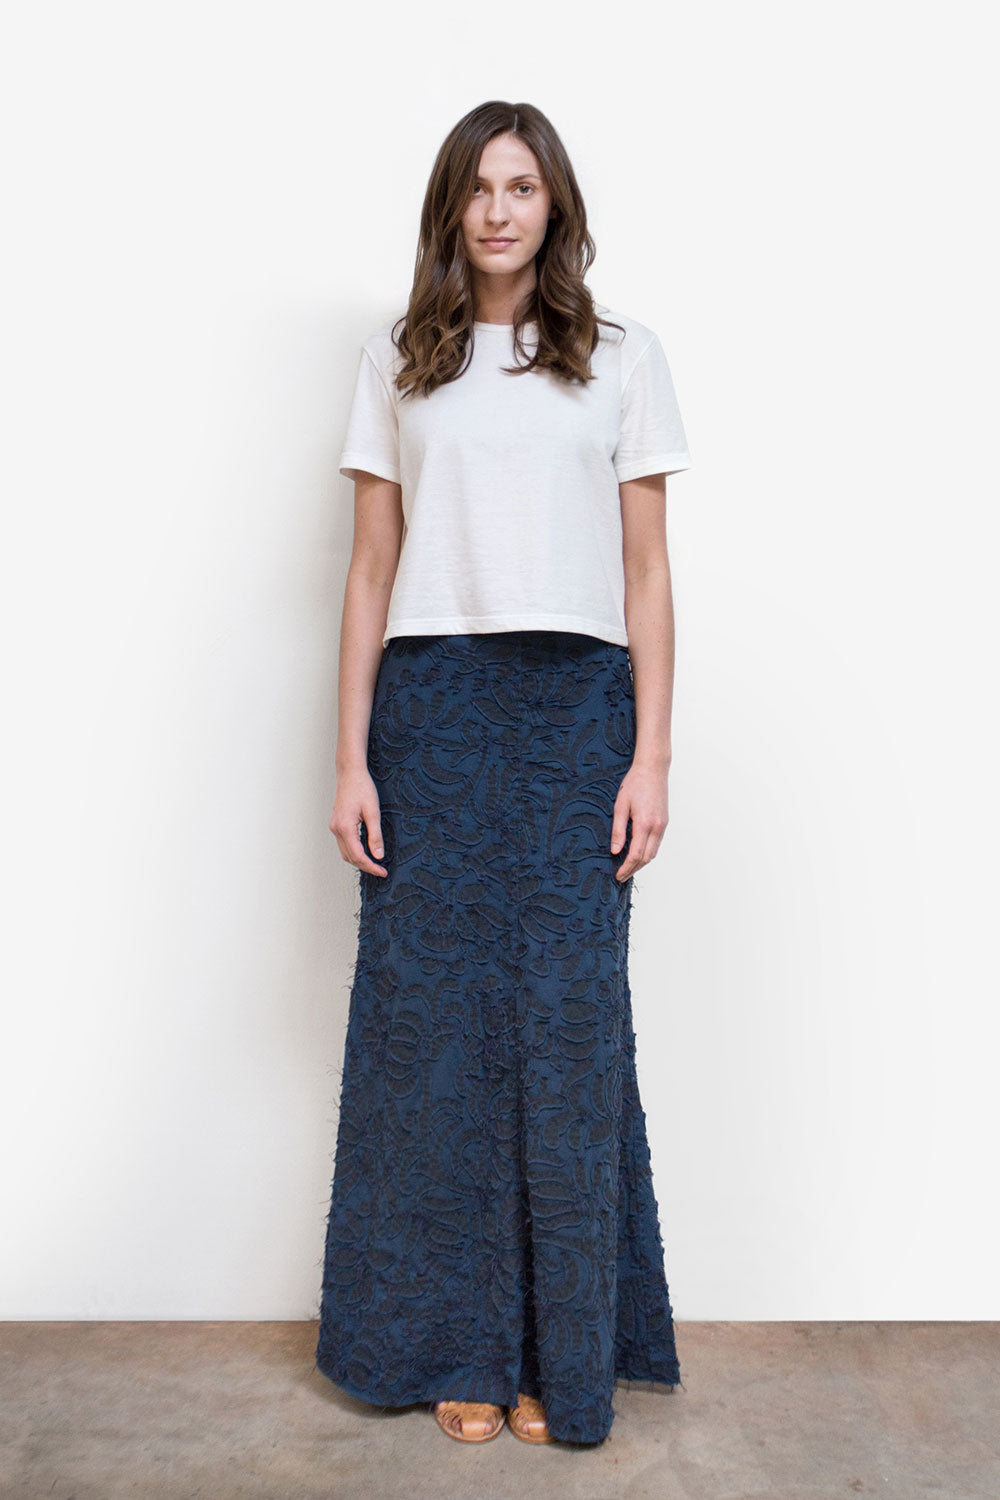 the school of making 100% organic cotton long fitted skirt for women in navy with applique floral print